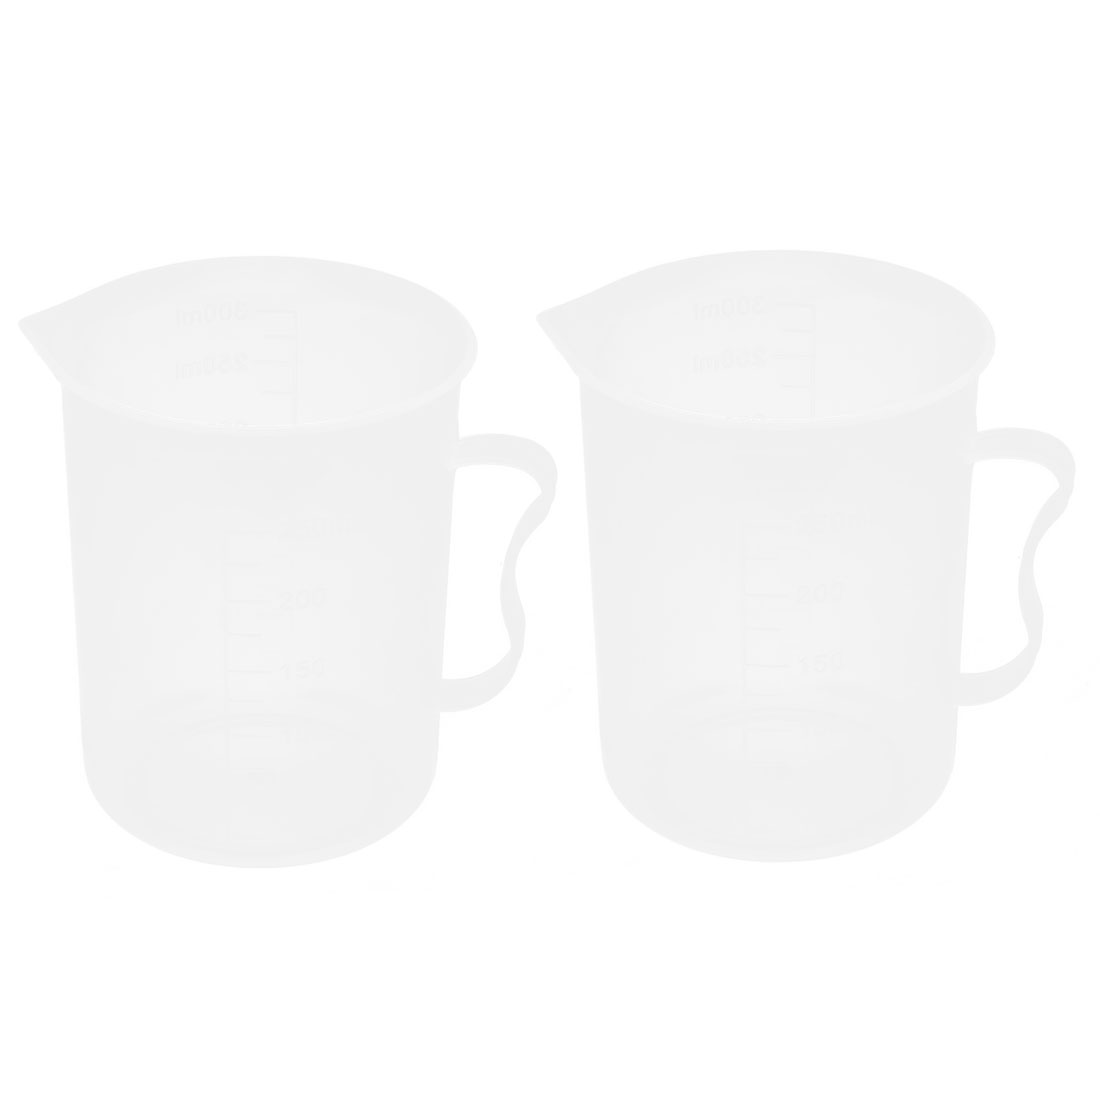 Lab Chemistry Experiment Liquid Storage Measuring Testing Beaker Cup 300ml 2 Pcs